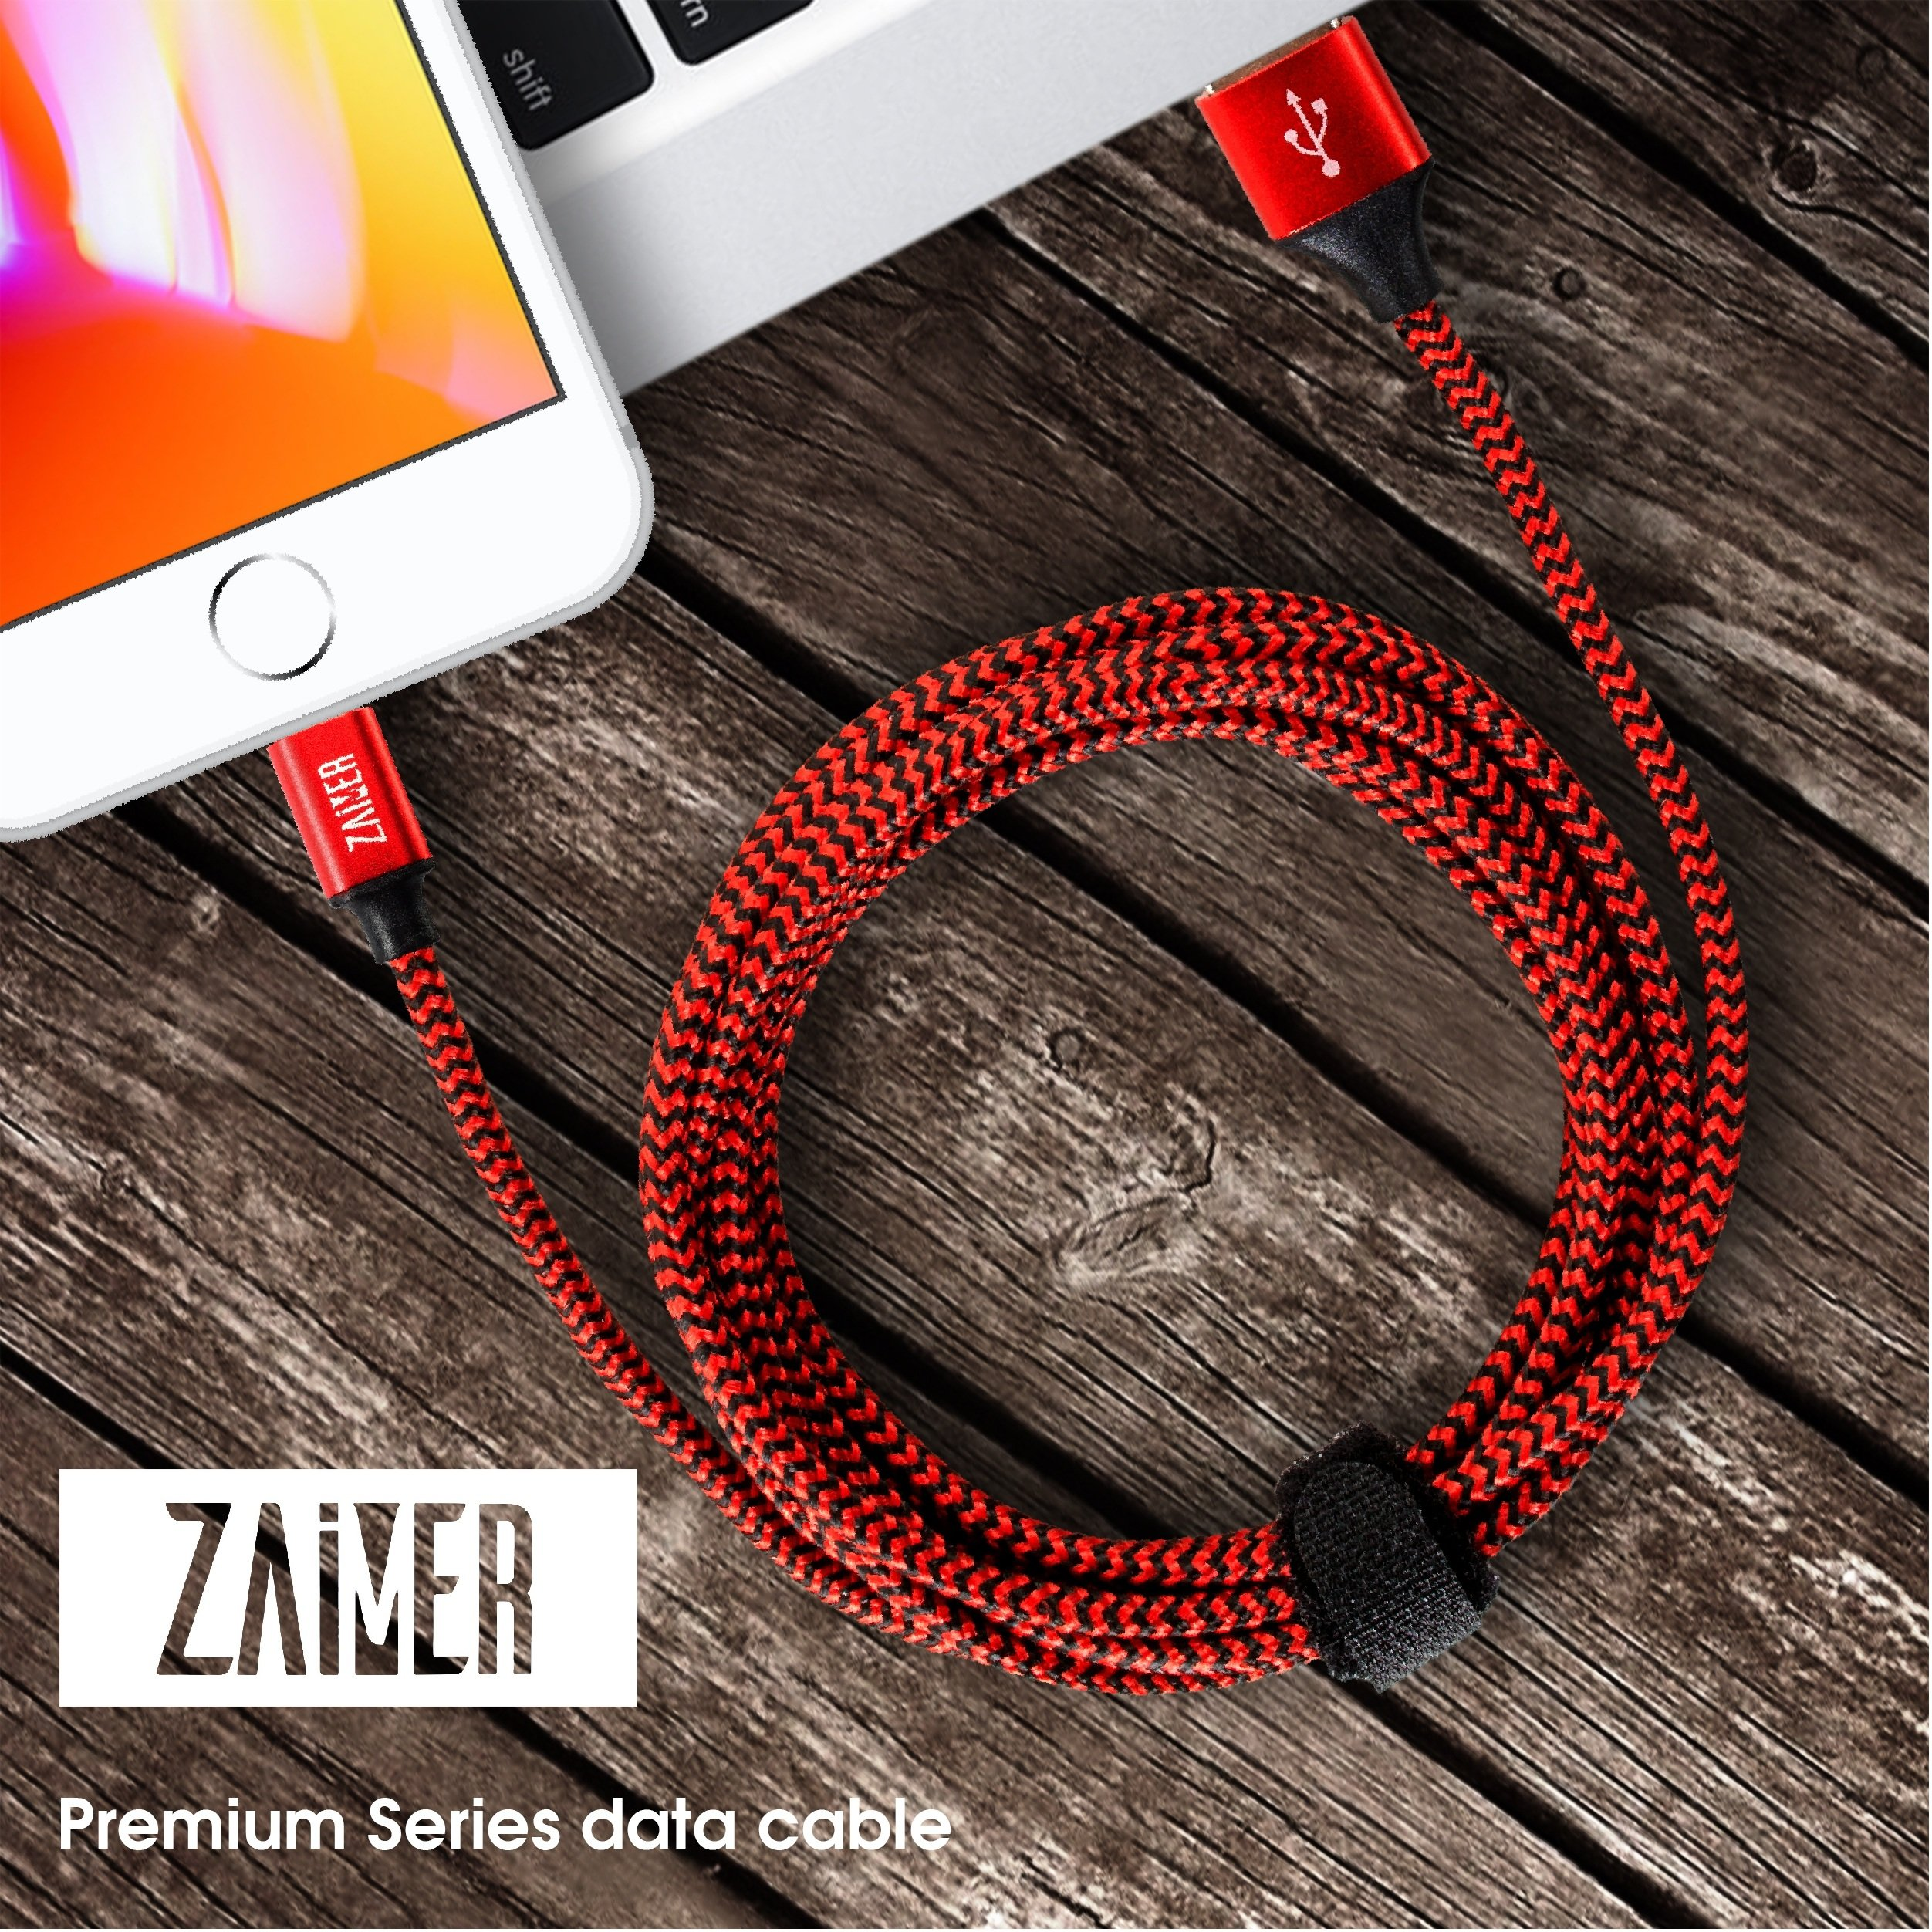 iPhone Charger Cable - Lightning Cable - 4Pack - 3FT 3FT 6FT 6FT -iPhone power cord pack for X 8 8 Plus 7 7 Plus 6 6S 6 Plus 5S SE iPad iPod by ZAiMER (Image #8)